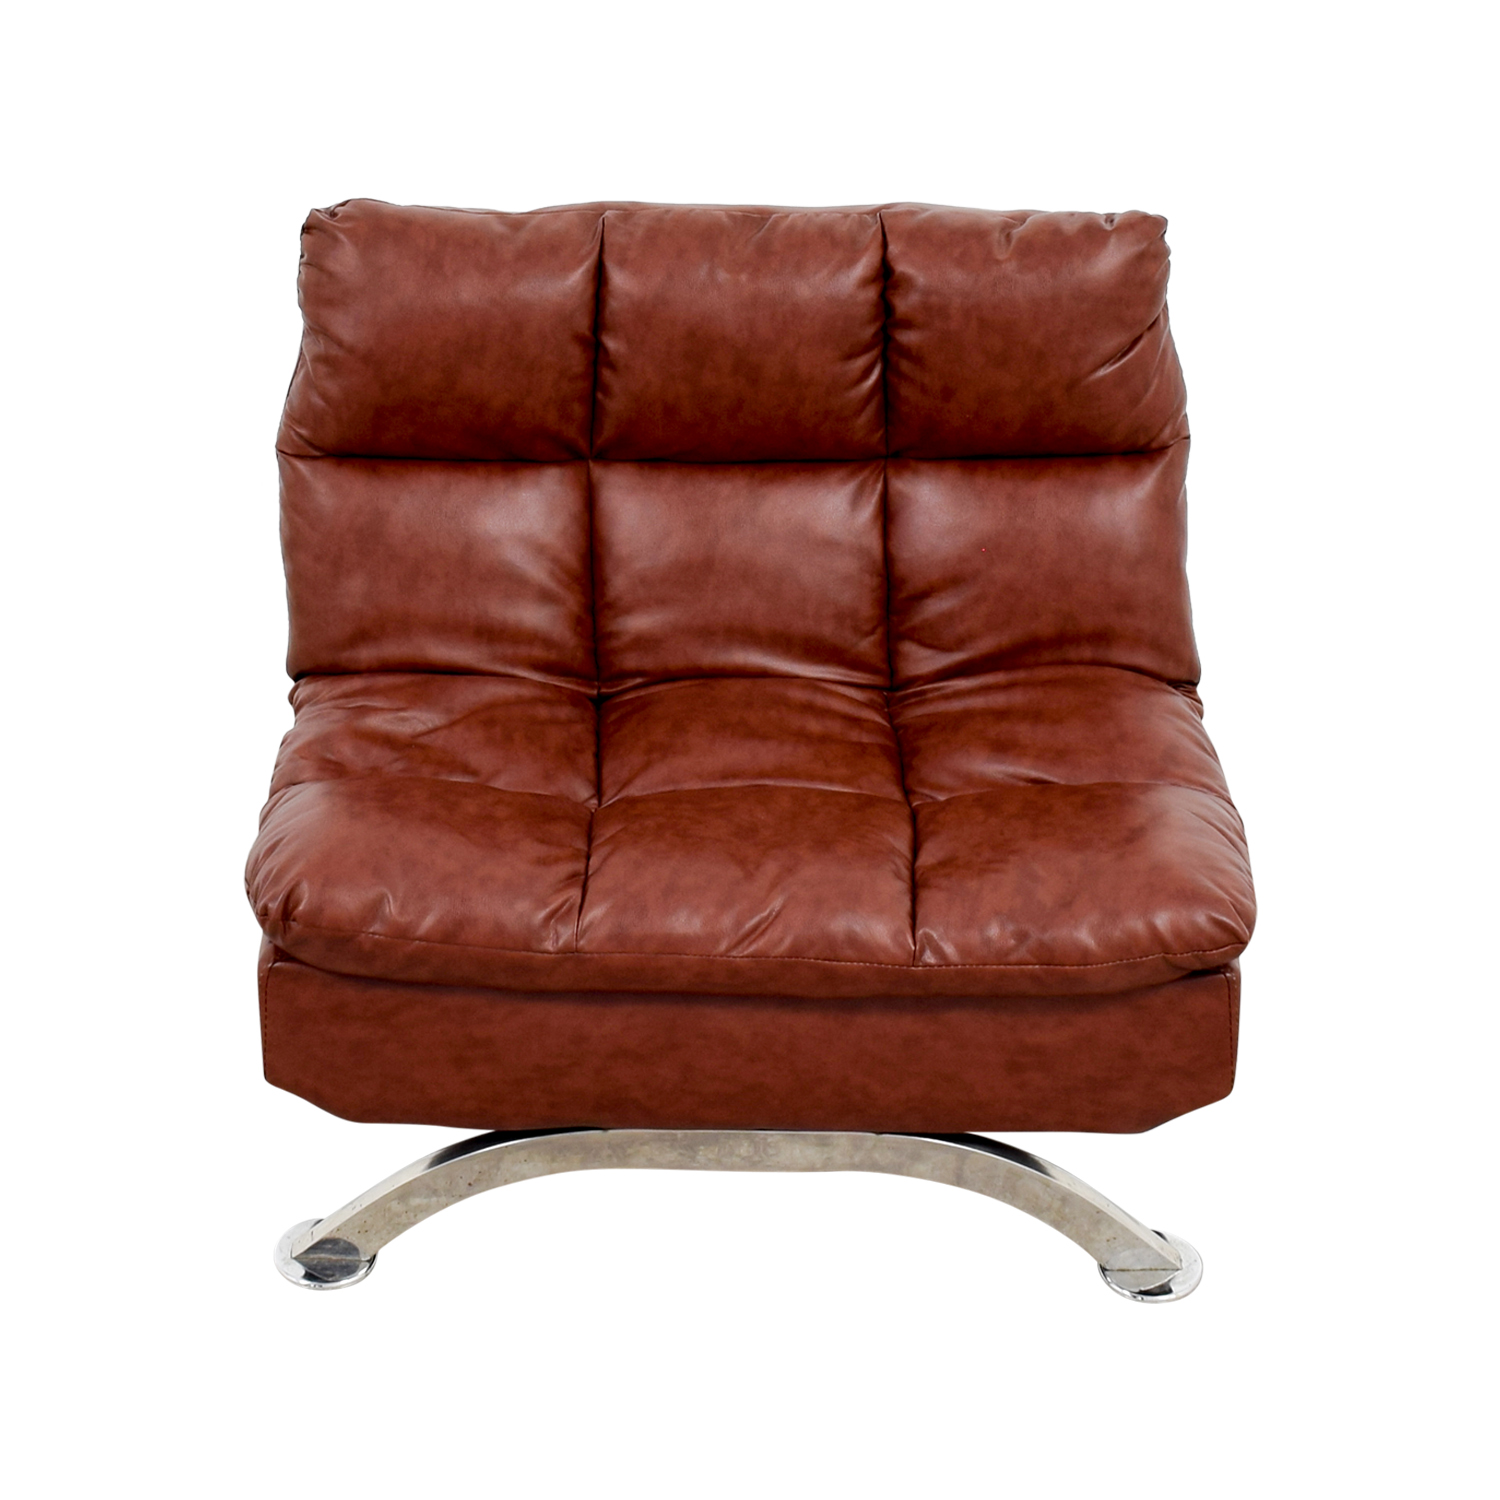 56% OFF Wayfair Wayfair Love Brown Leather Tufted Reclining